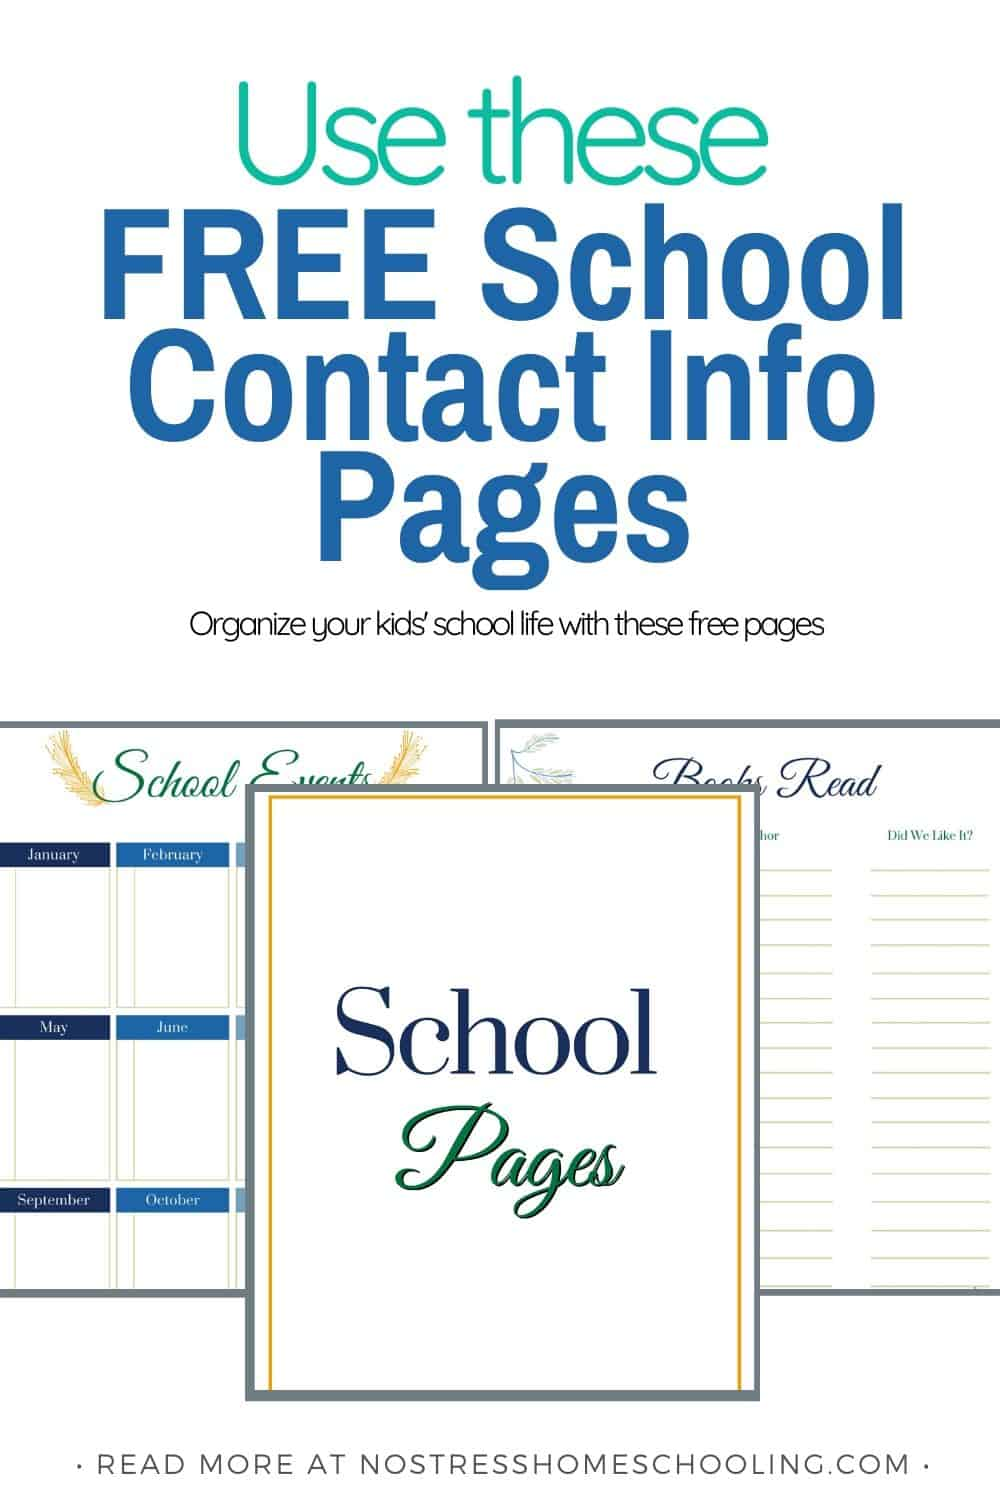 It's time to organize your kids school life with this free school contact information template. There's also a few homeschool pages to help as well.